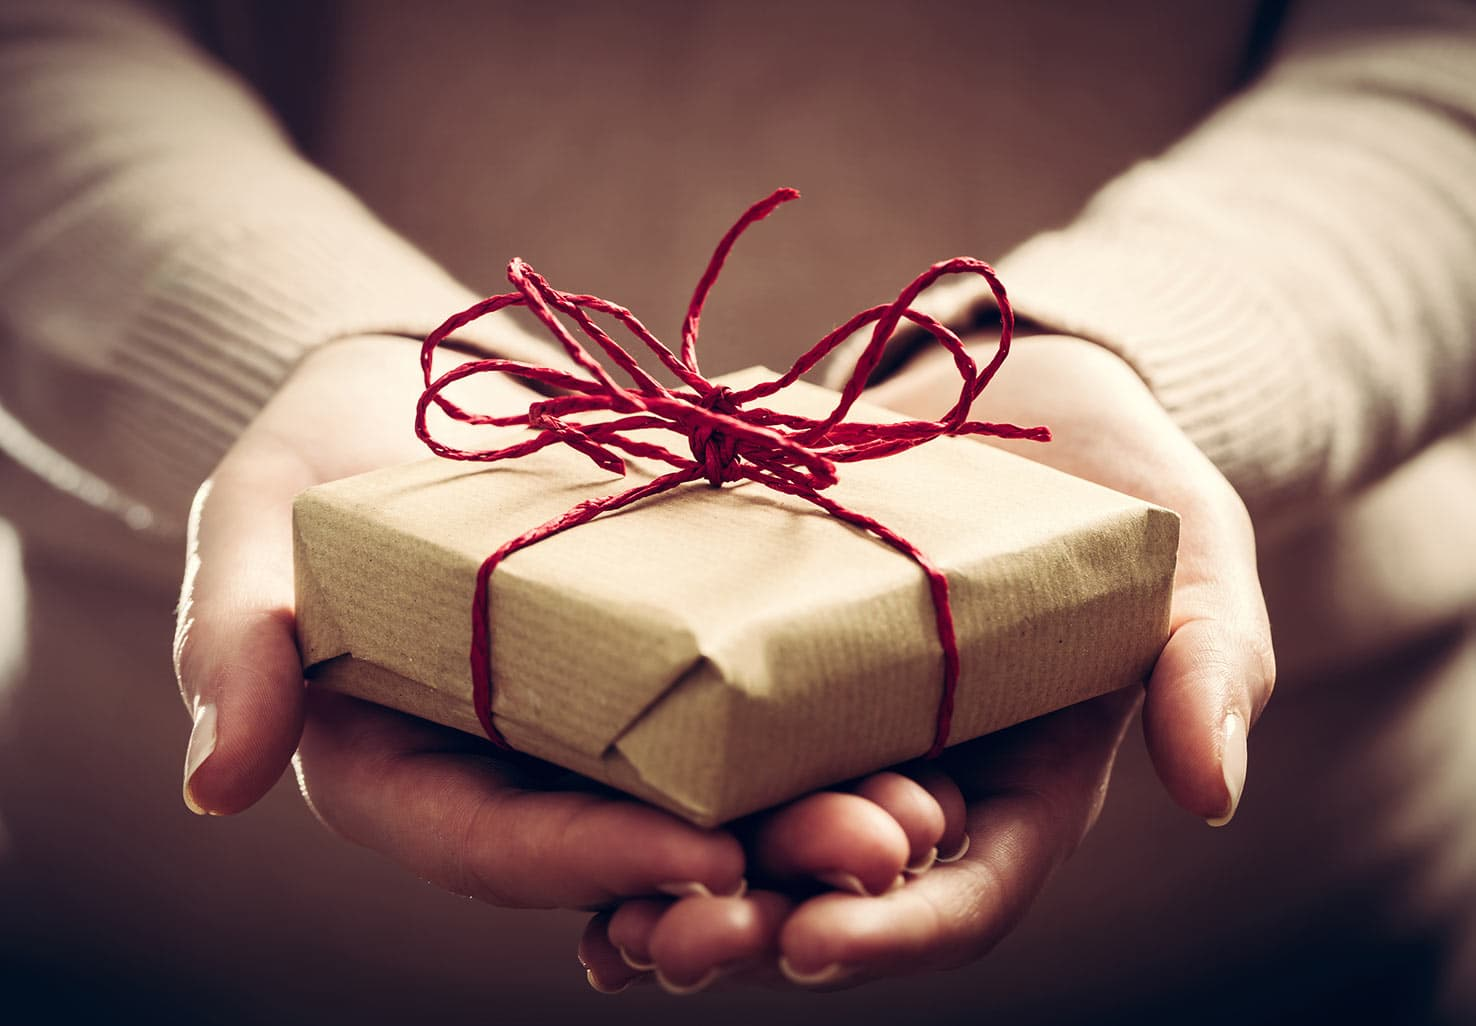 Hands giving a present with red bow